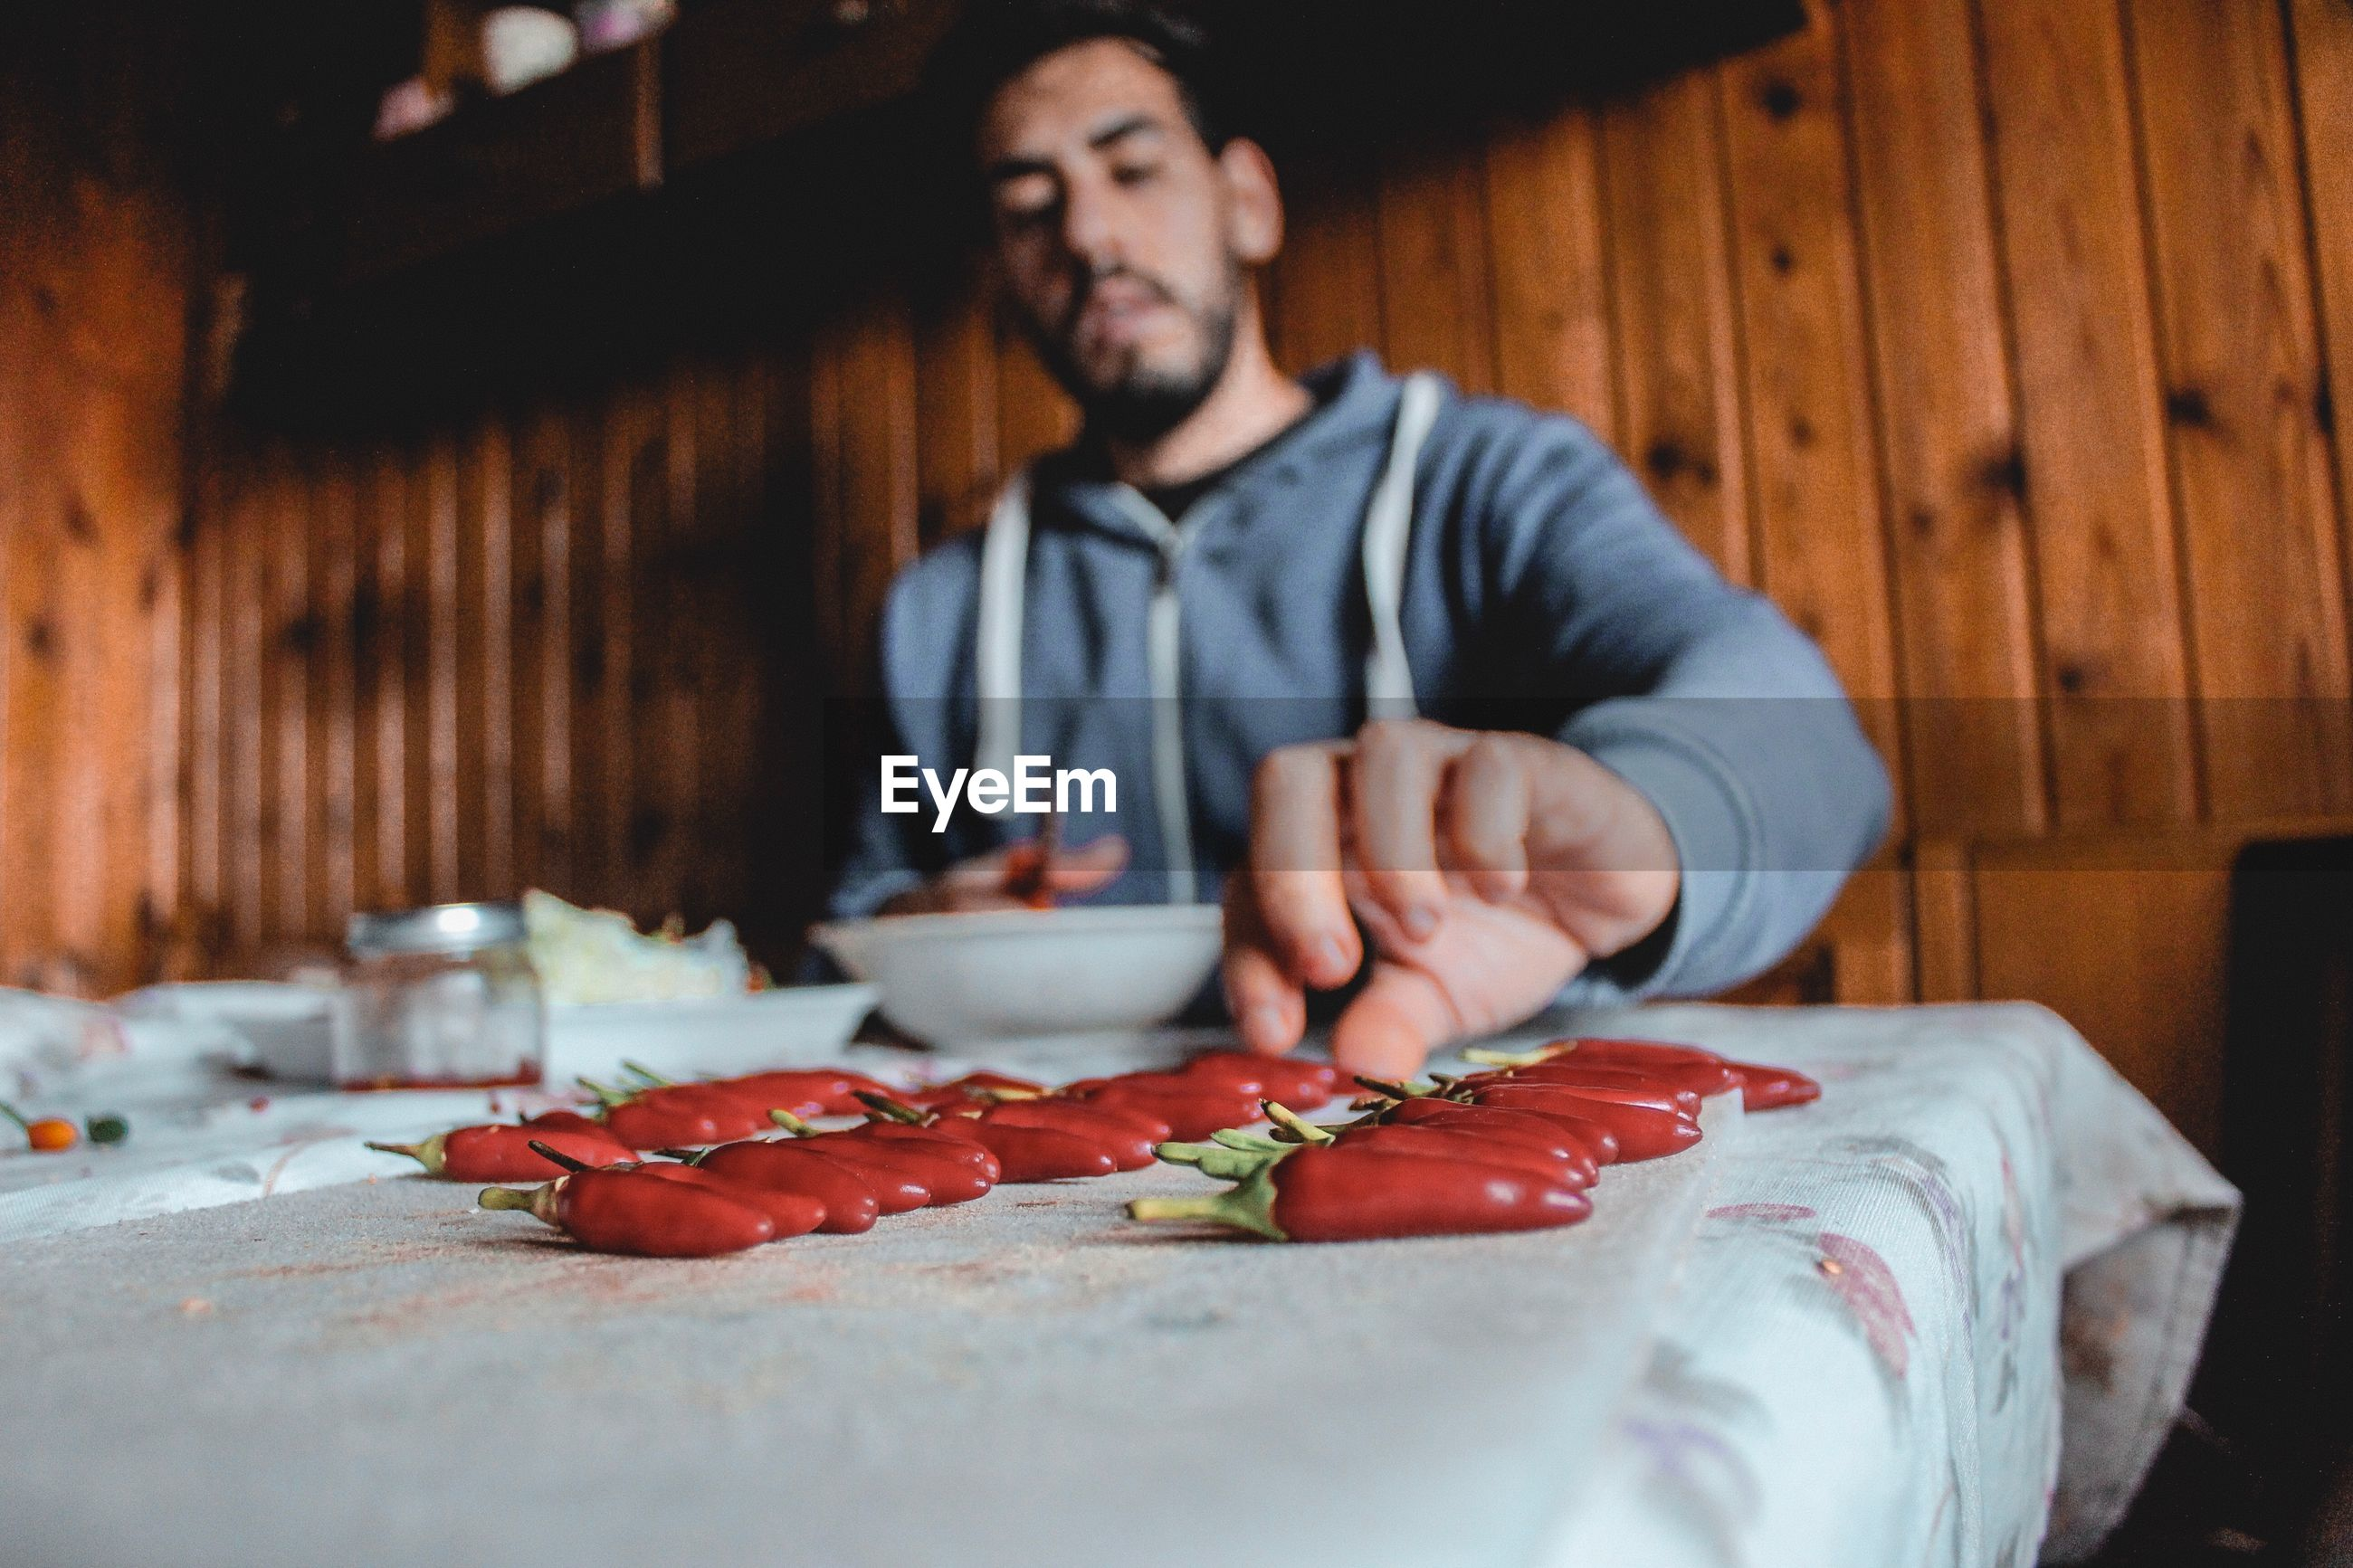 Man having red chili pepper at table in restaurant